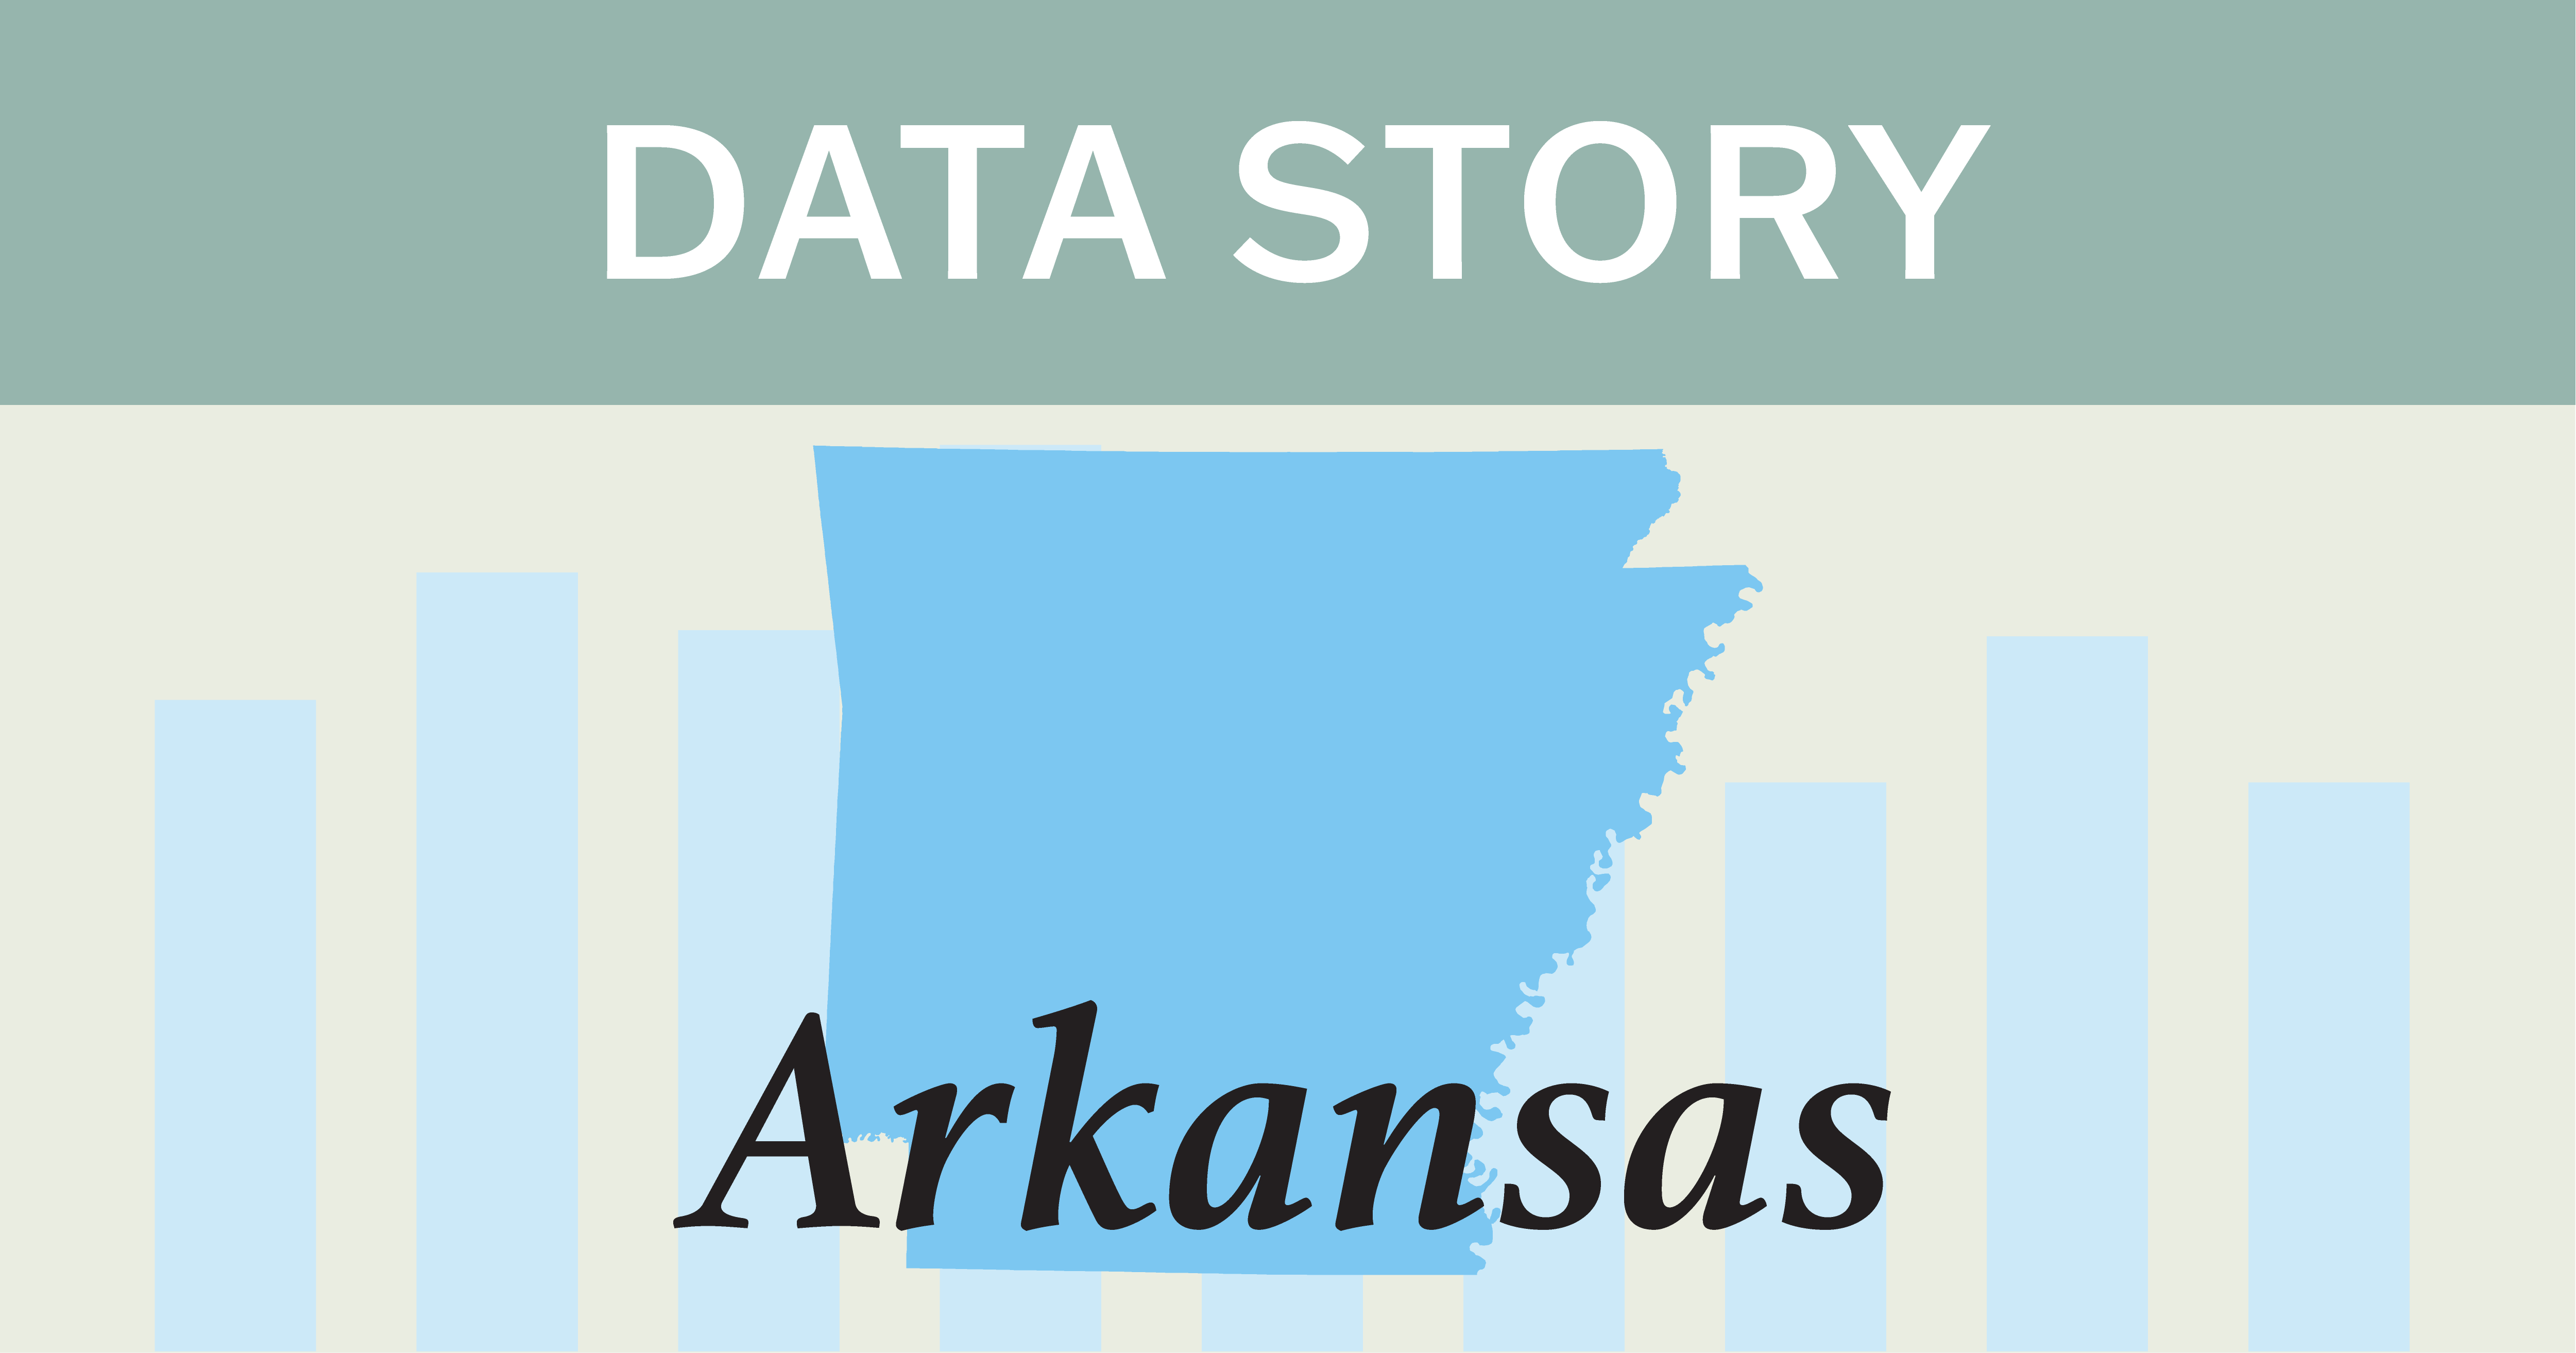 Outline of the state of Arkansas.